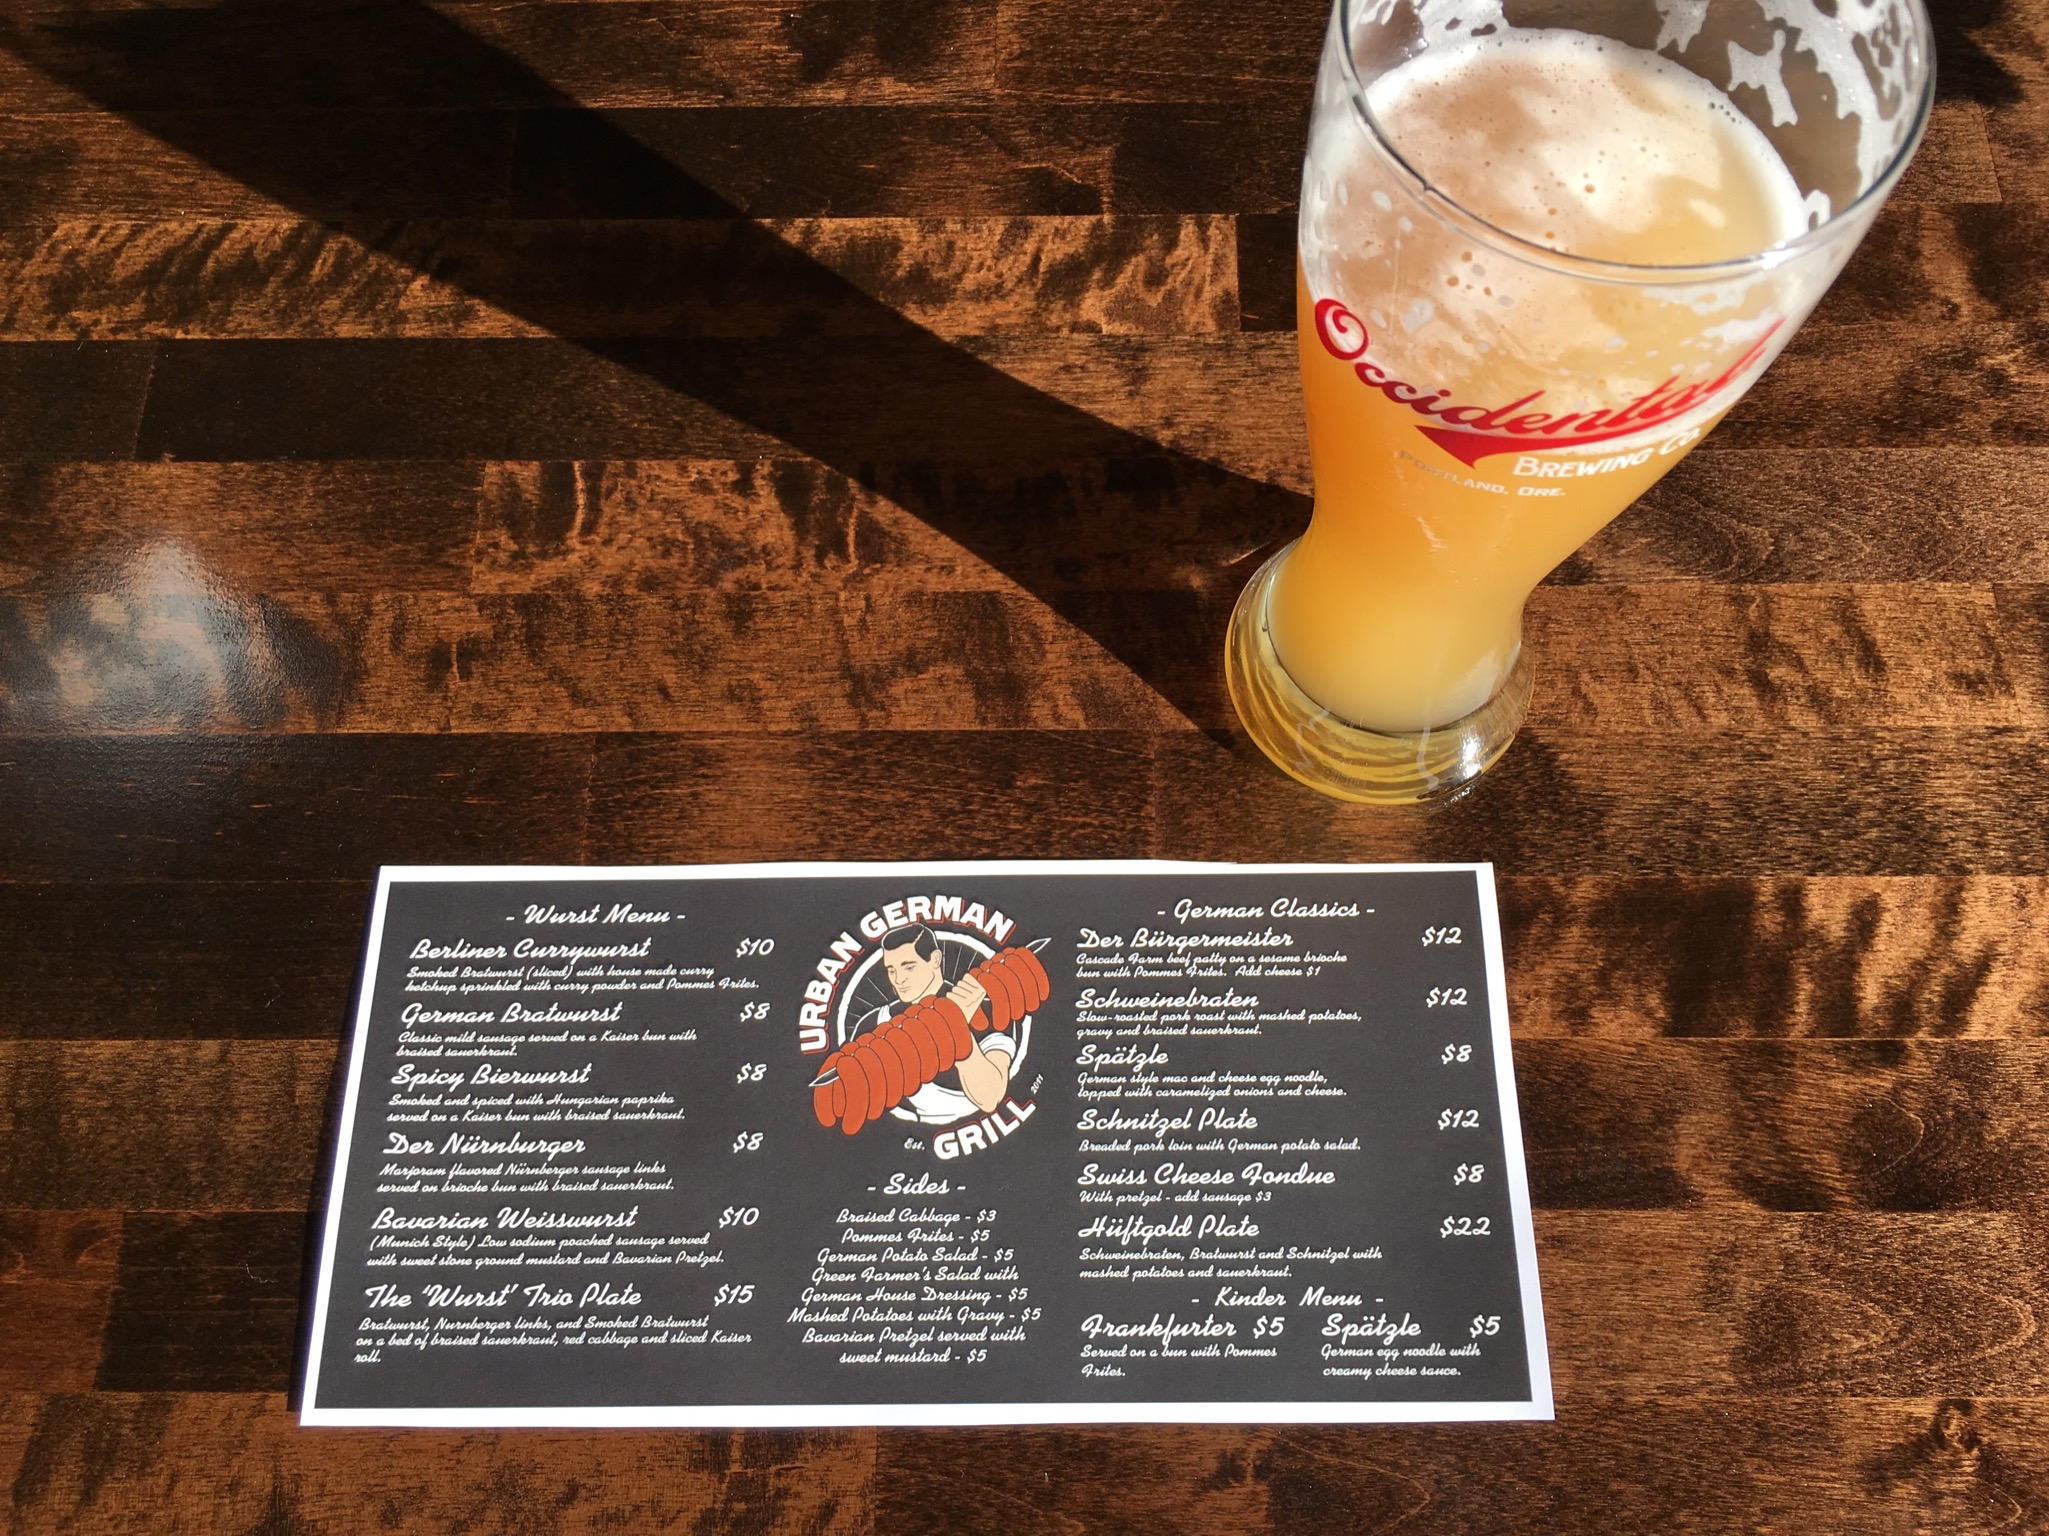 A Hefeweizen and the food menu at Occidental Wursthaus. (photo by Cat Stelzer)